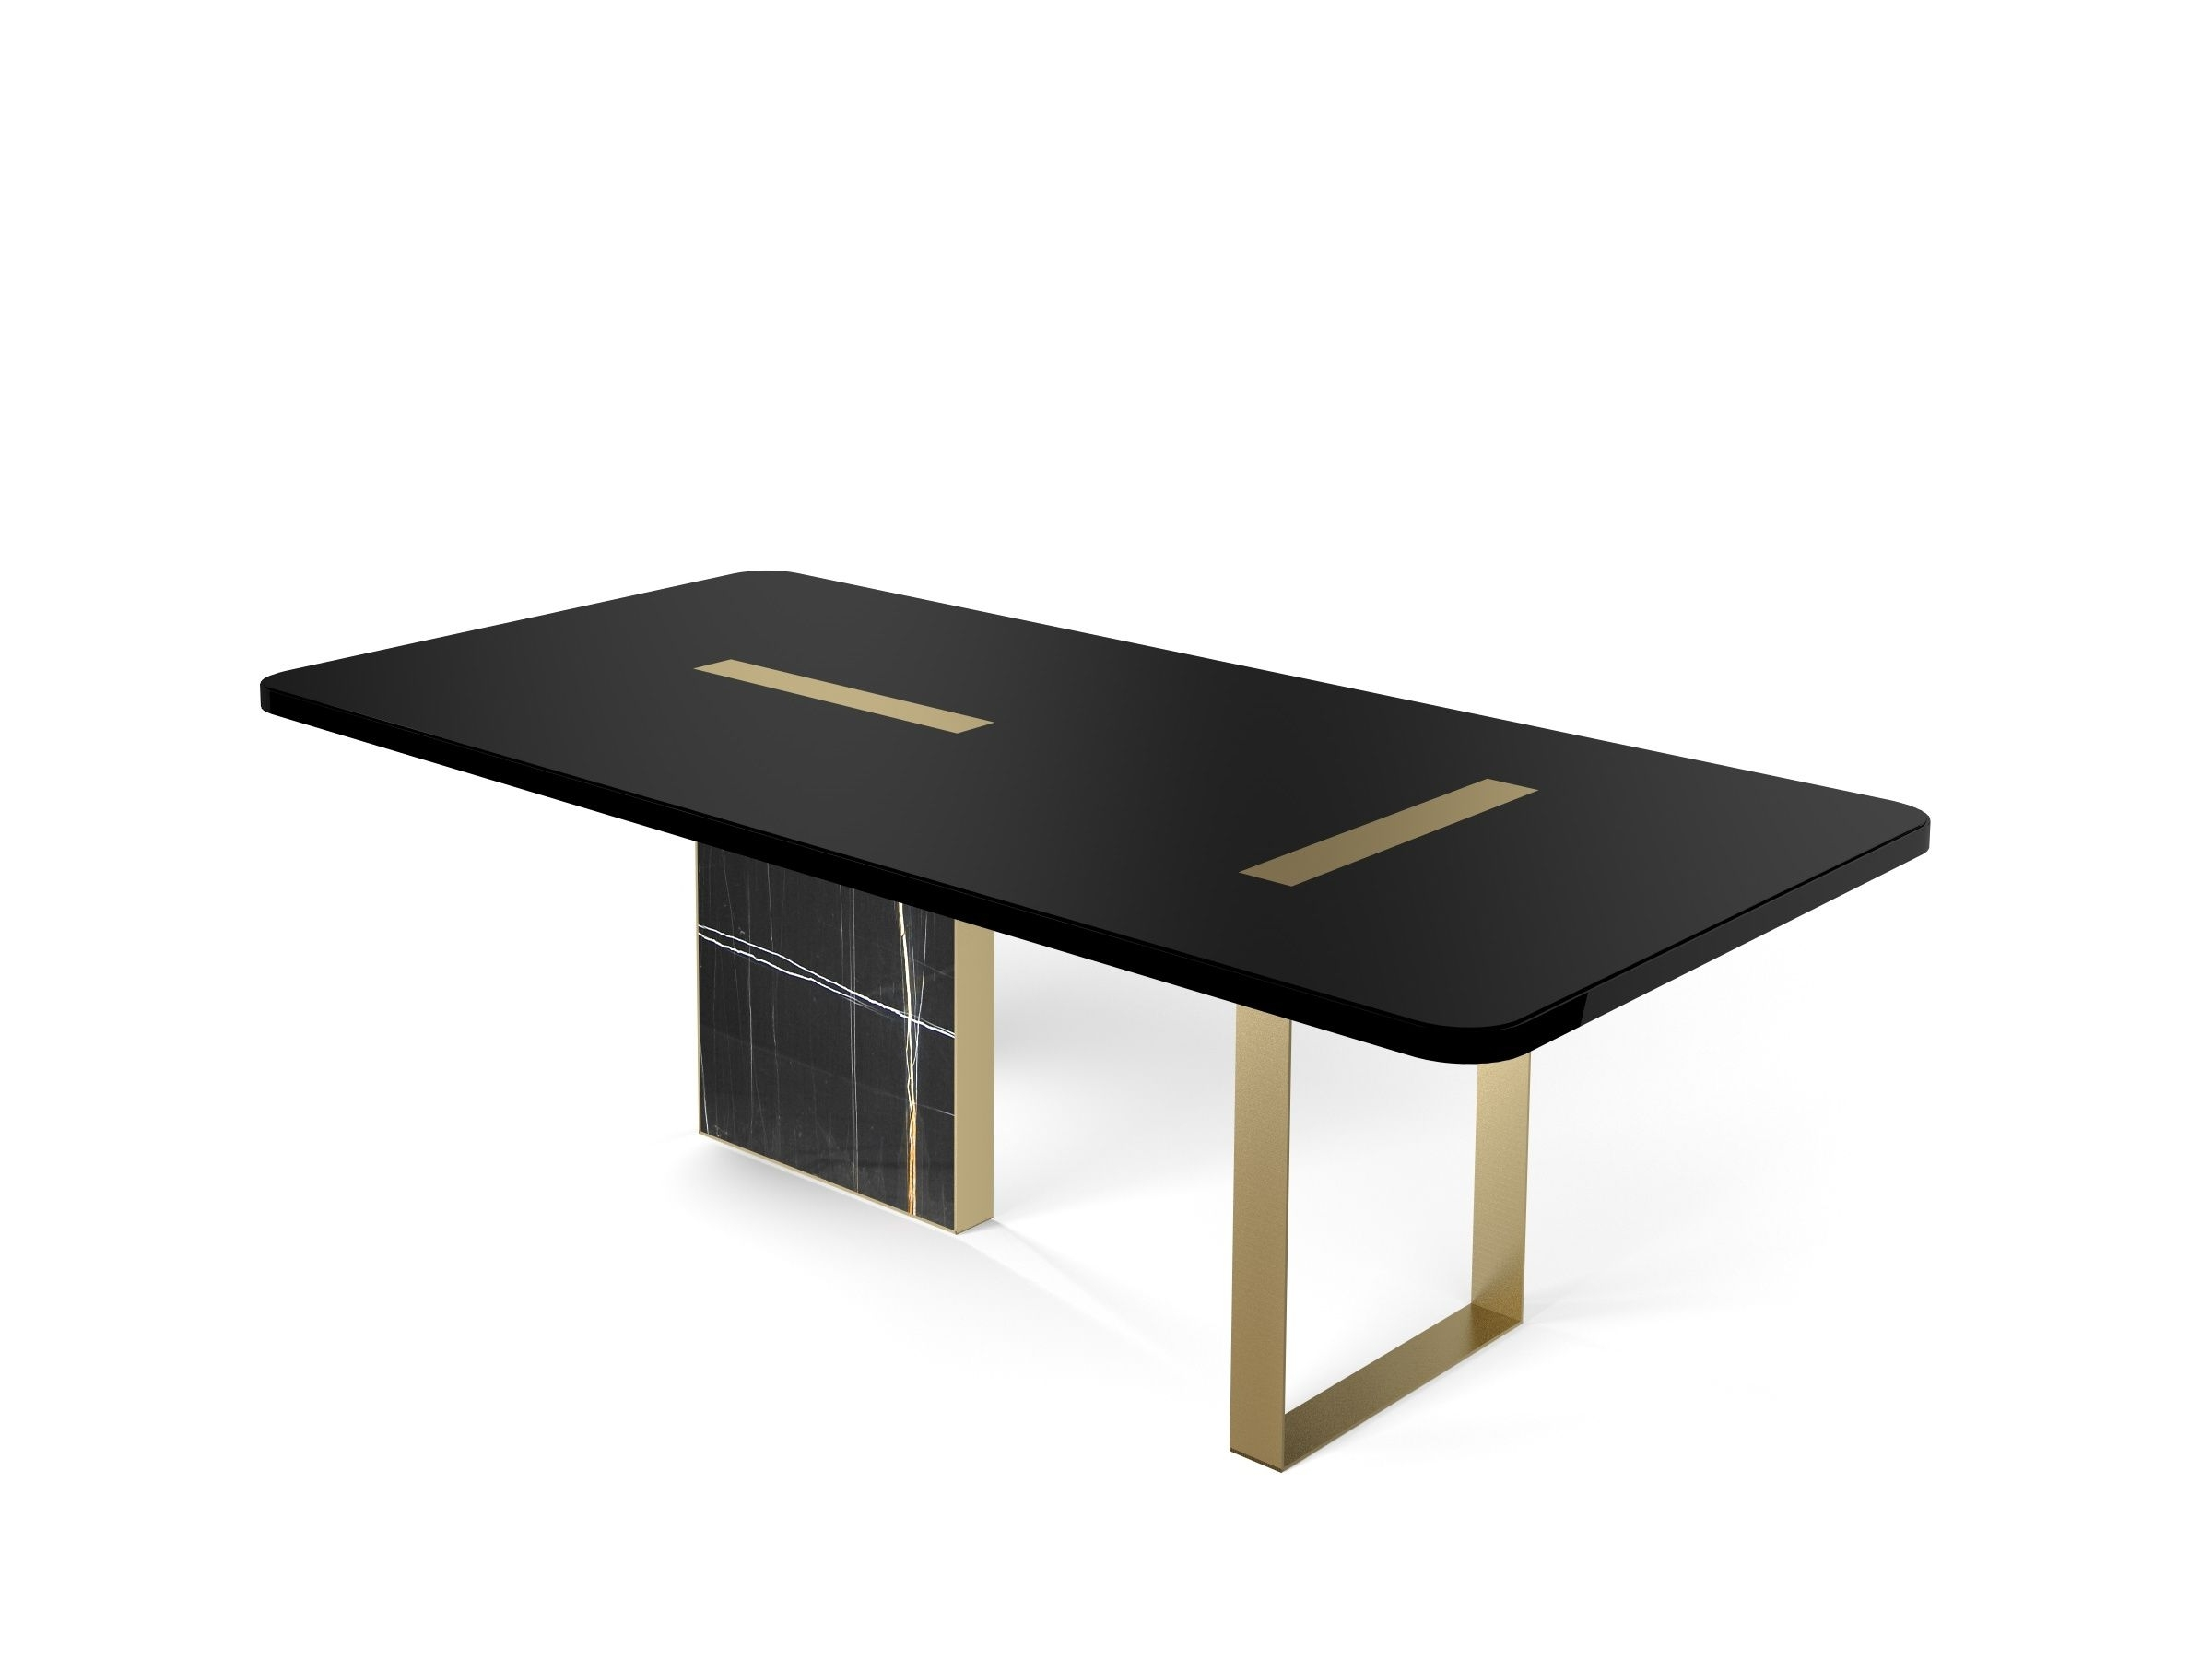 Best And Newest Tyron Dining Table 220X110 In Black Laquered Wood With Brushed Brass Regarding Laurent Rectangle Dining Tables (View 2 of 25)